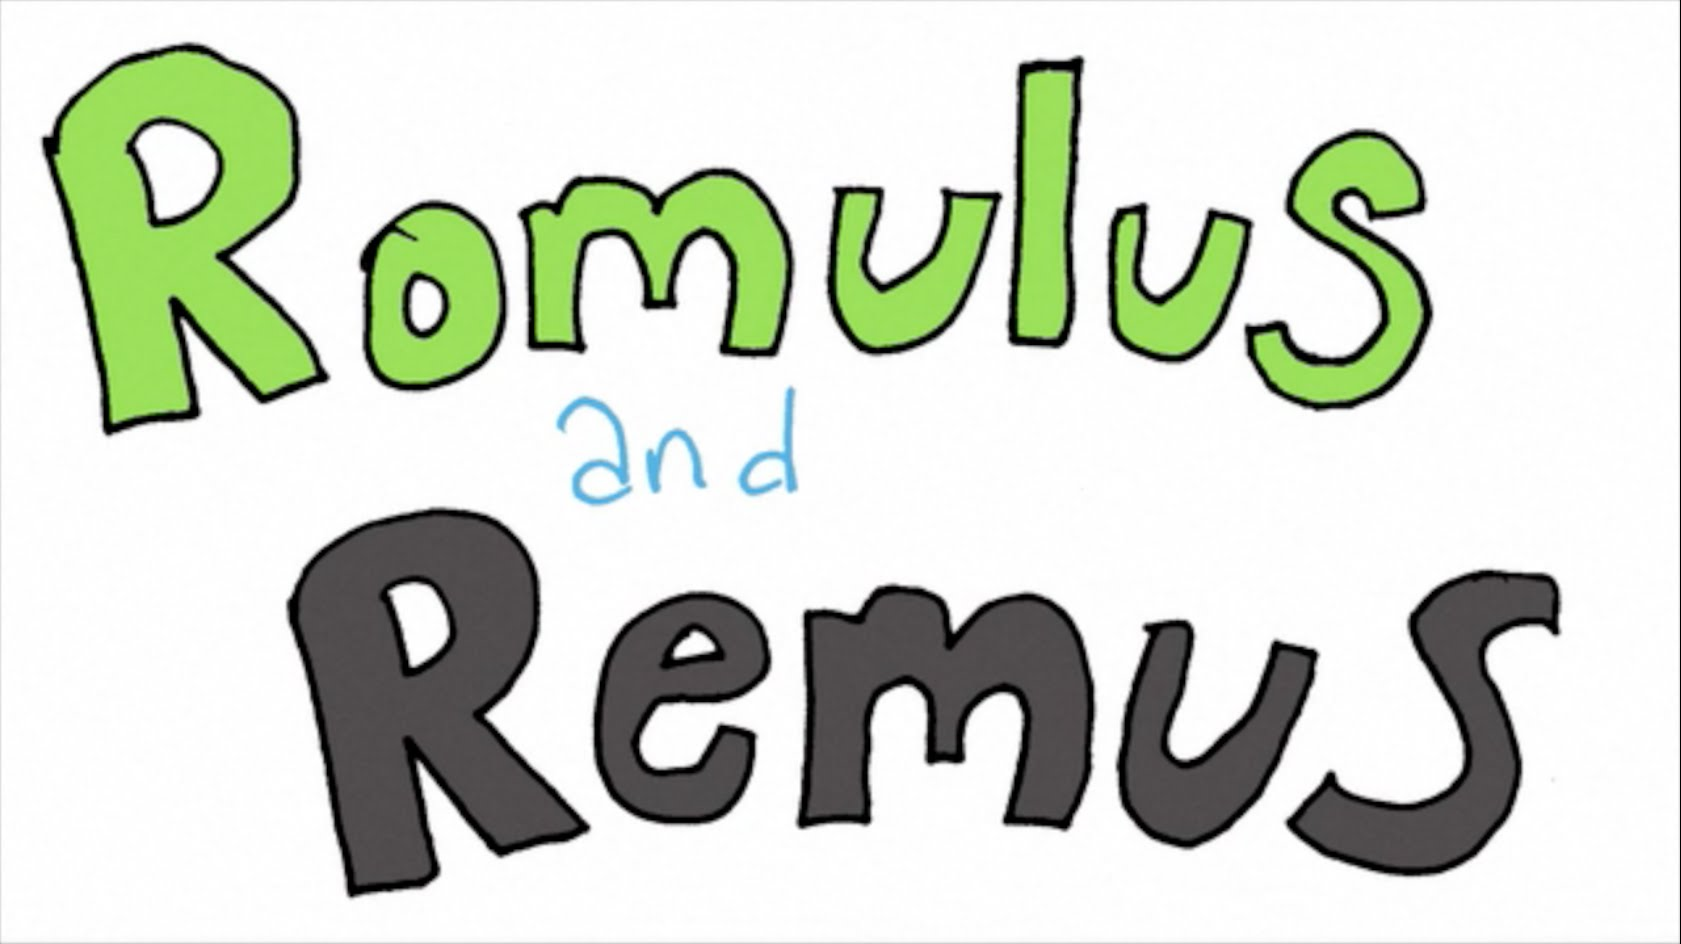 Empire clipart romulus and remus Remus Romulus and Remus YouTube